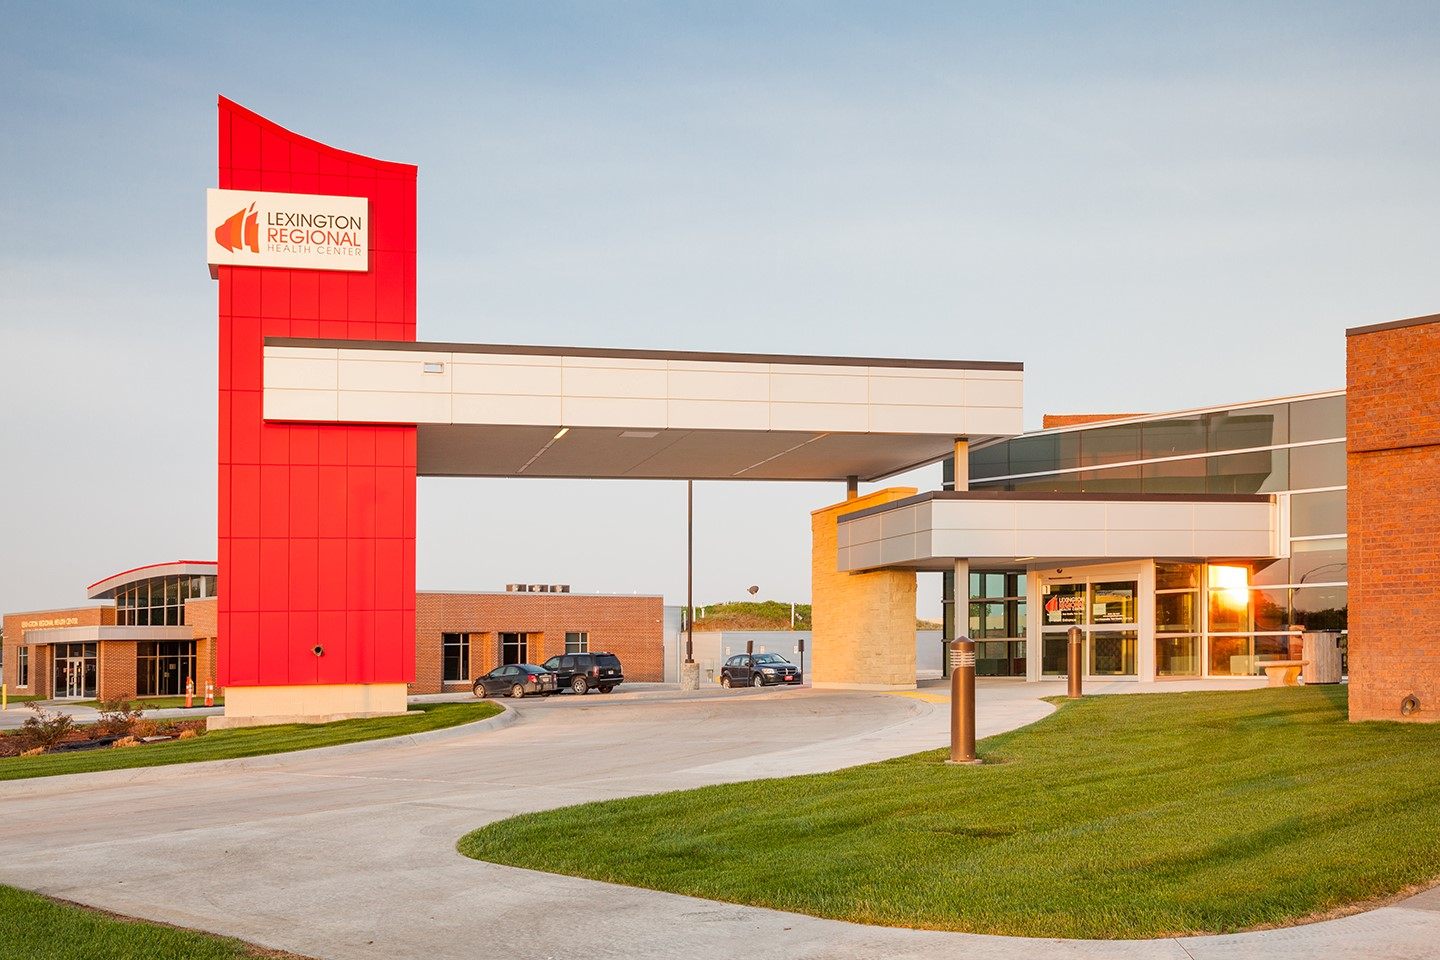 Lexington Regional Health Center (LRHC), located in Lexington, Nebraska